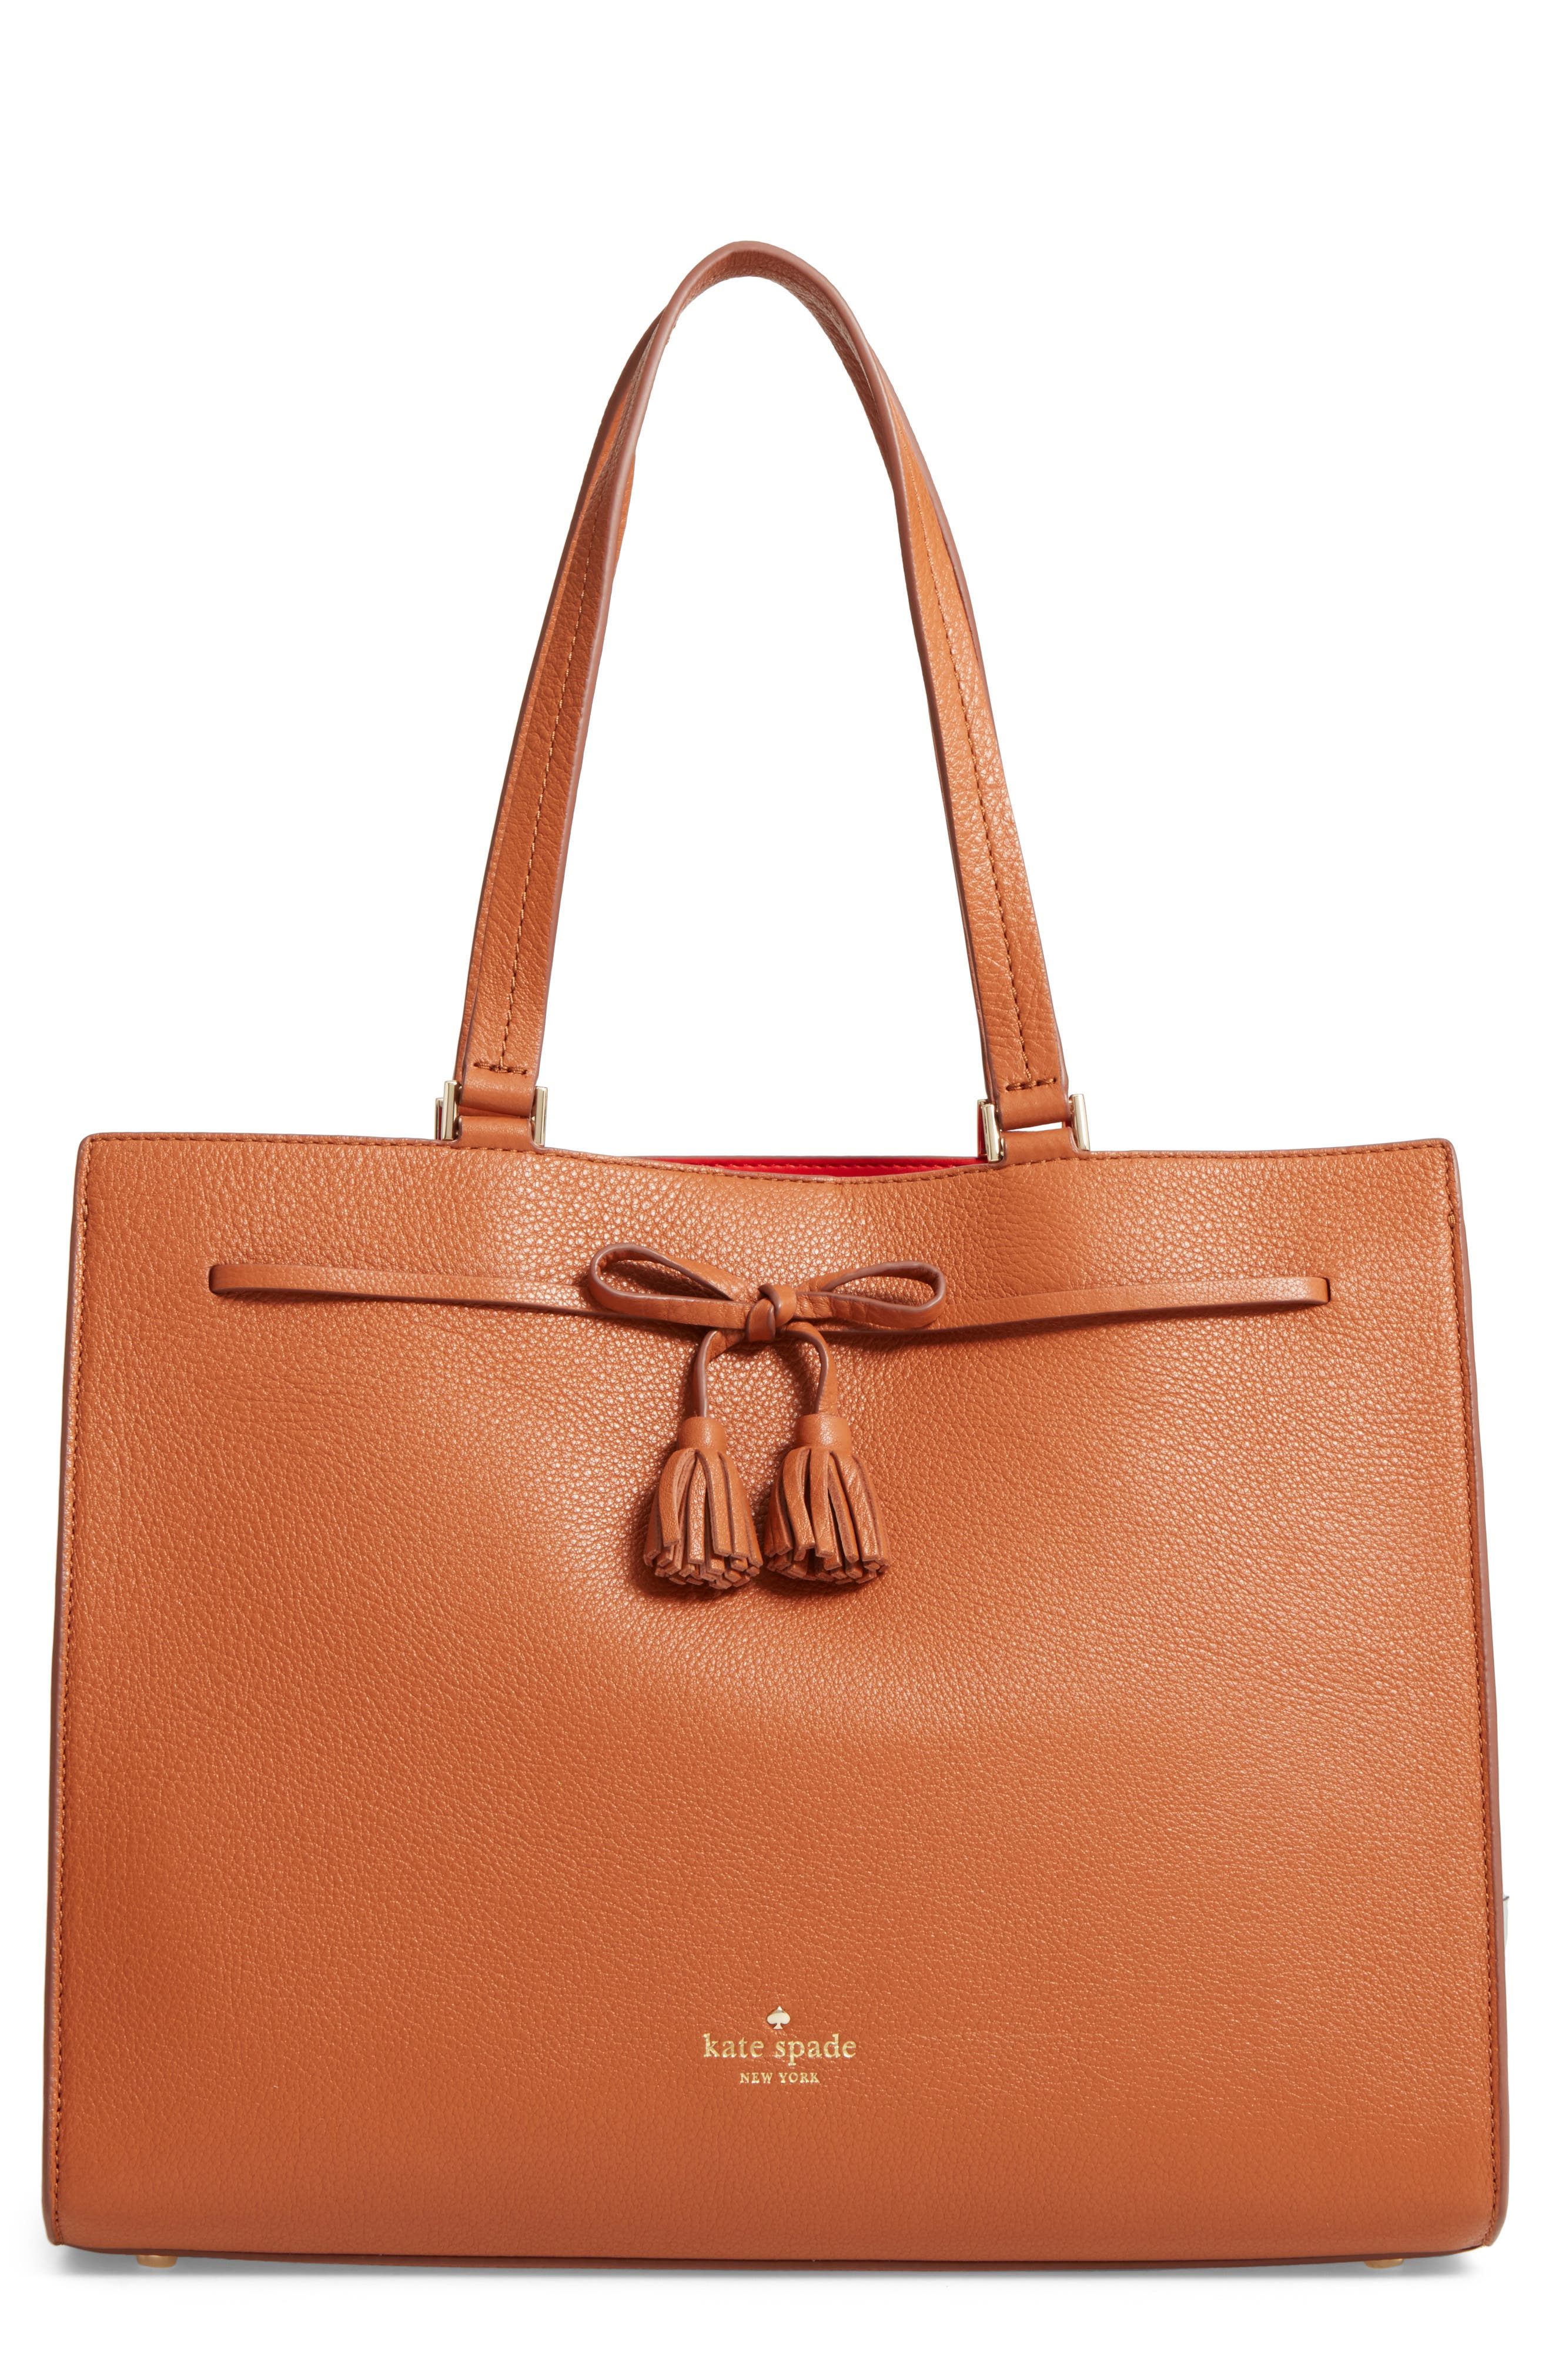 kate spade new york hayes street large isobel leather tote